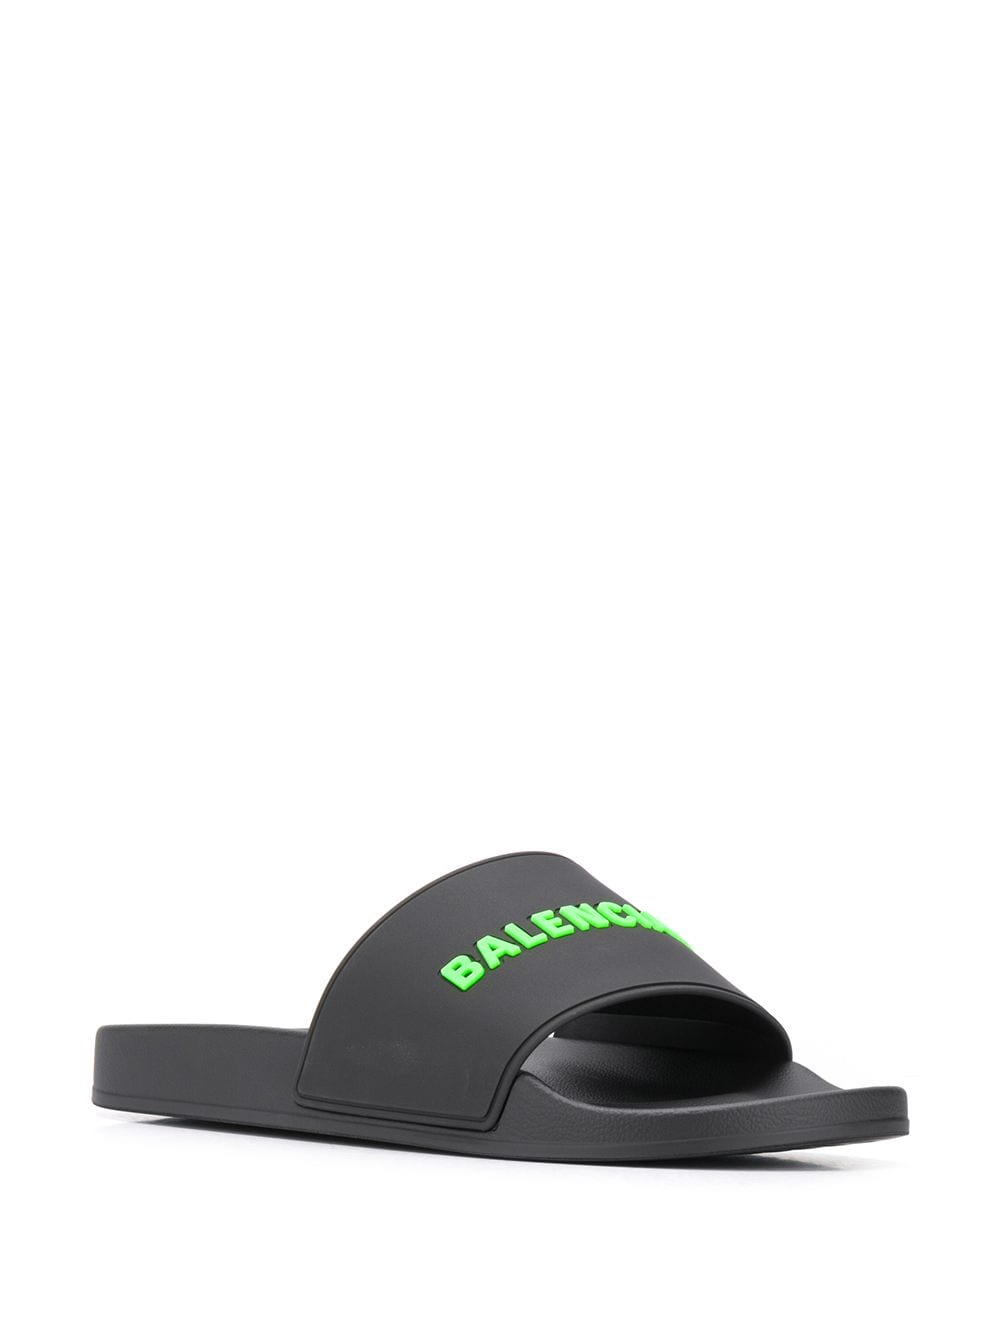 BALENCIAGA embossed logo pool sliders